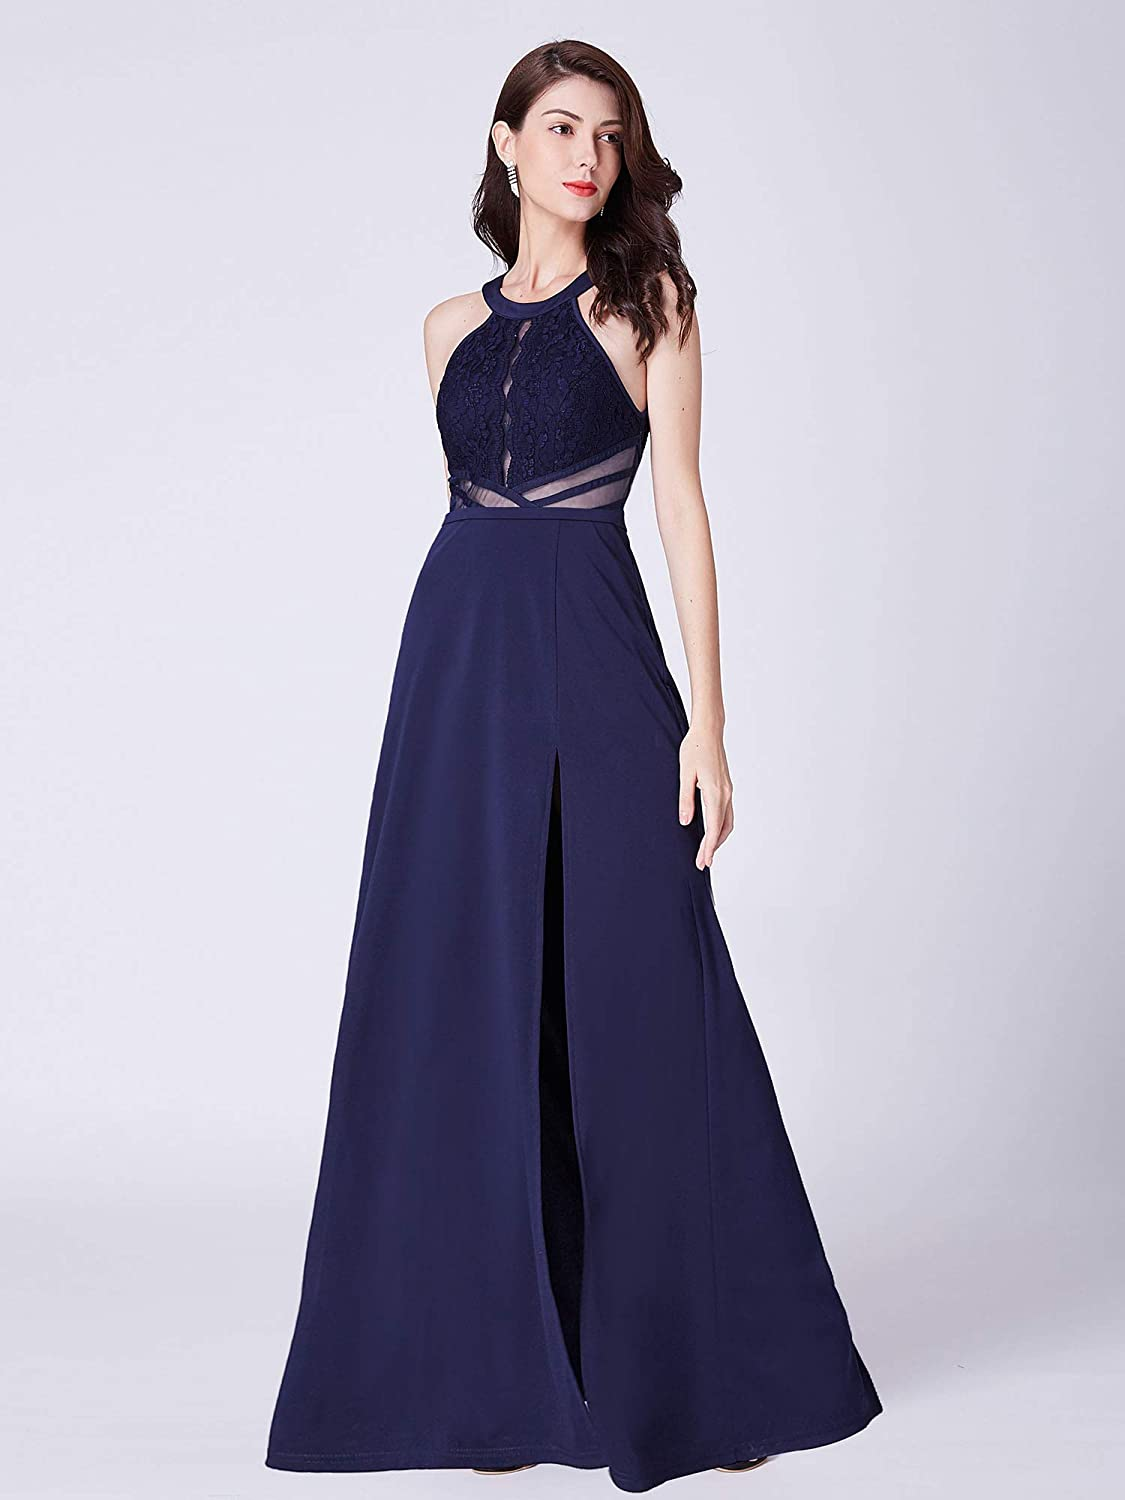 c765d49145f4 Ever-Pretty Navy Blue Long Lace Prom Dress with Side Slit 07390 at Amazon  Women's Clothing store: